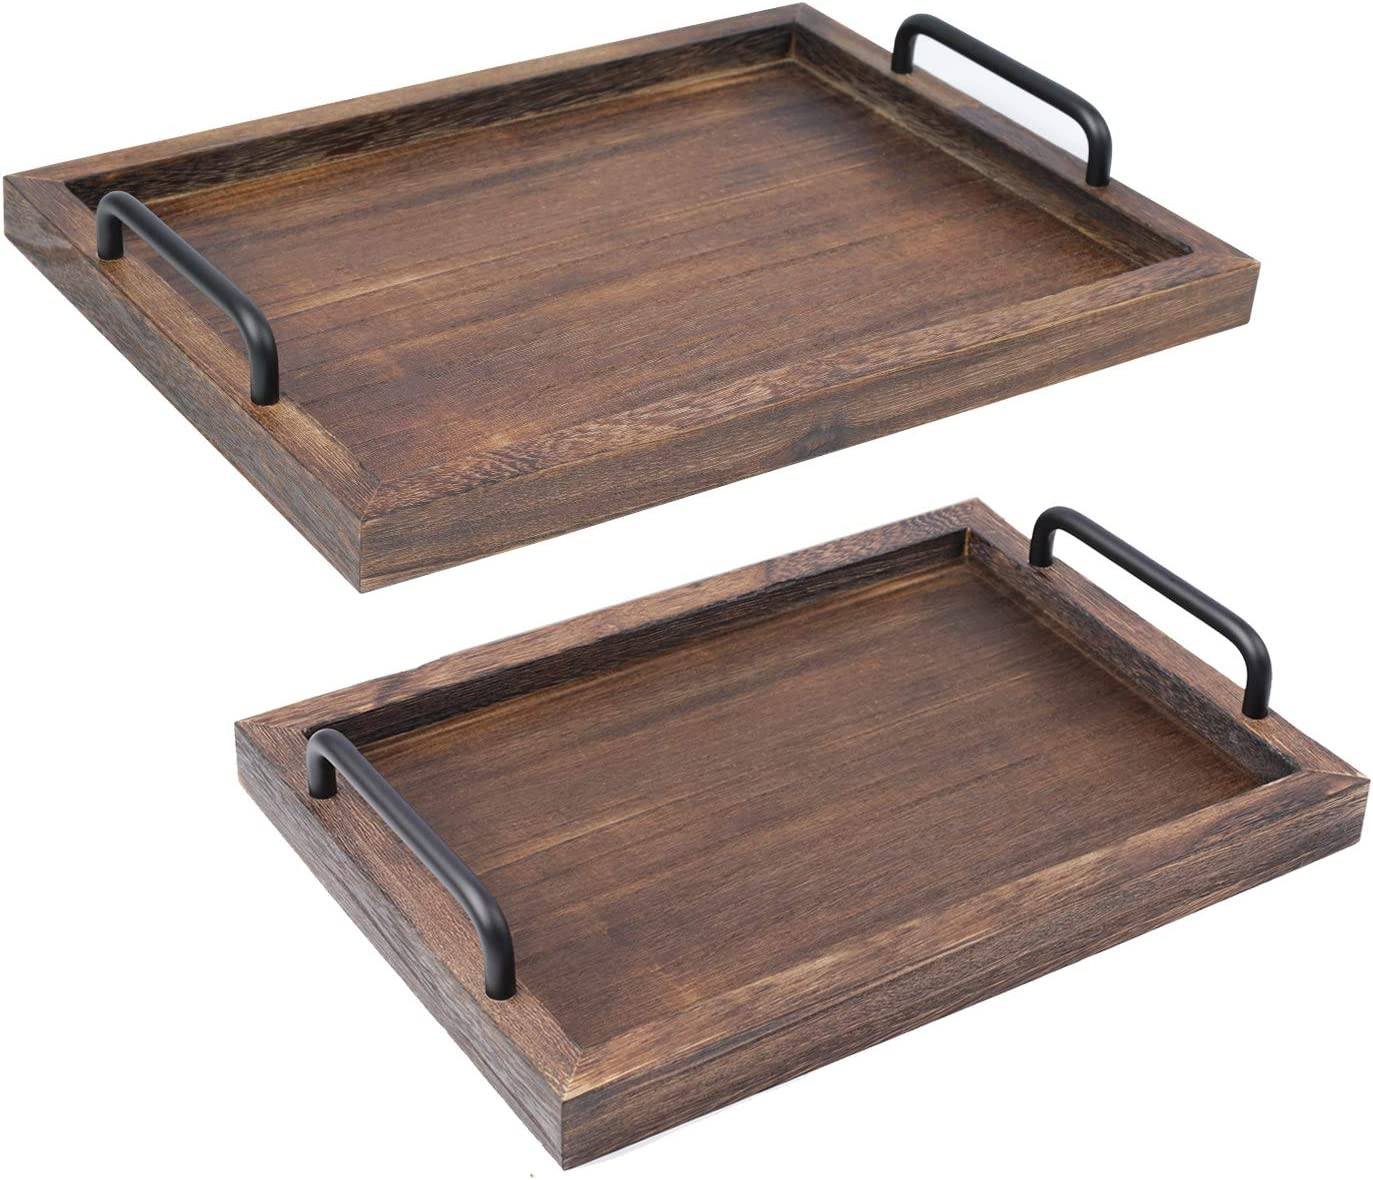 LIBWYS Rustic Wooden Serving Trays with Handle, Decorative Nesting Food Platters for Breakfast, Coffee Table/Butler, 2 Pack (Large 15.8 x 1.2 x 11.8 inches, Small 13.4 x 1.2 x 9.5 inches)